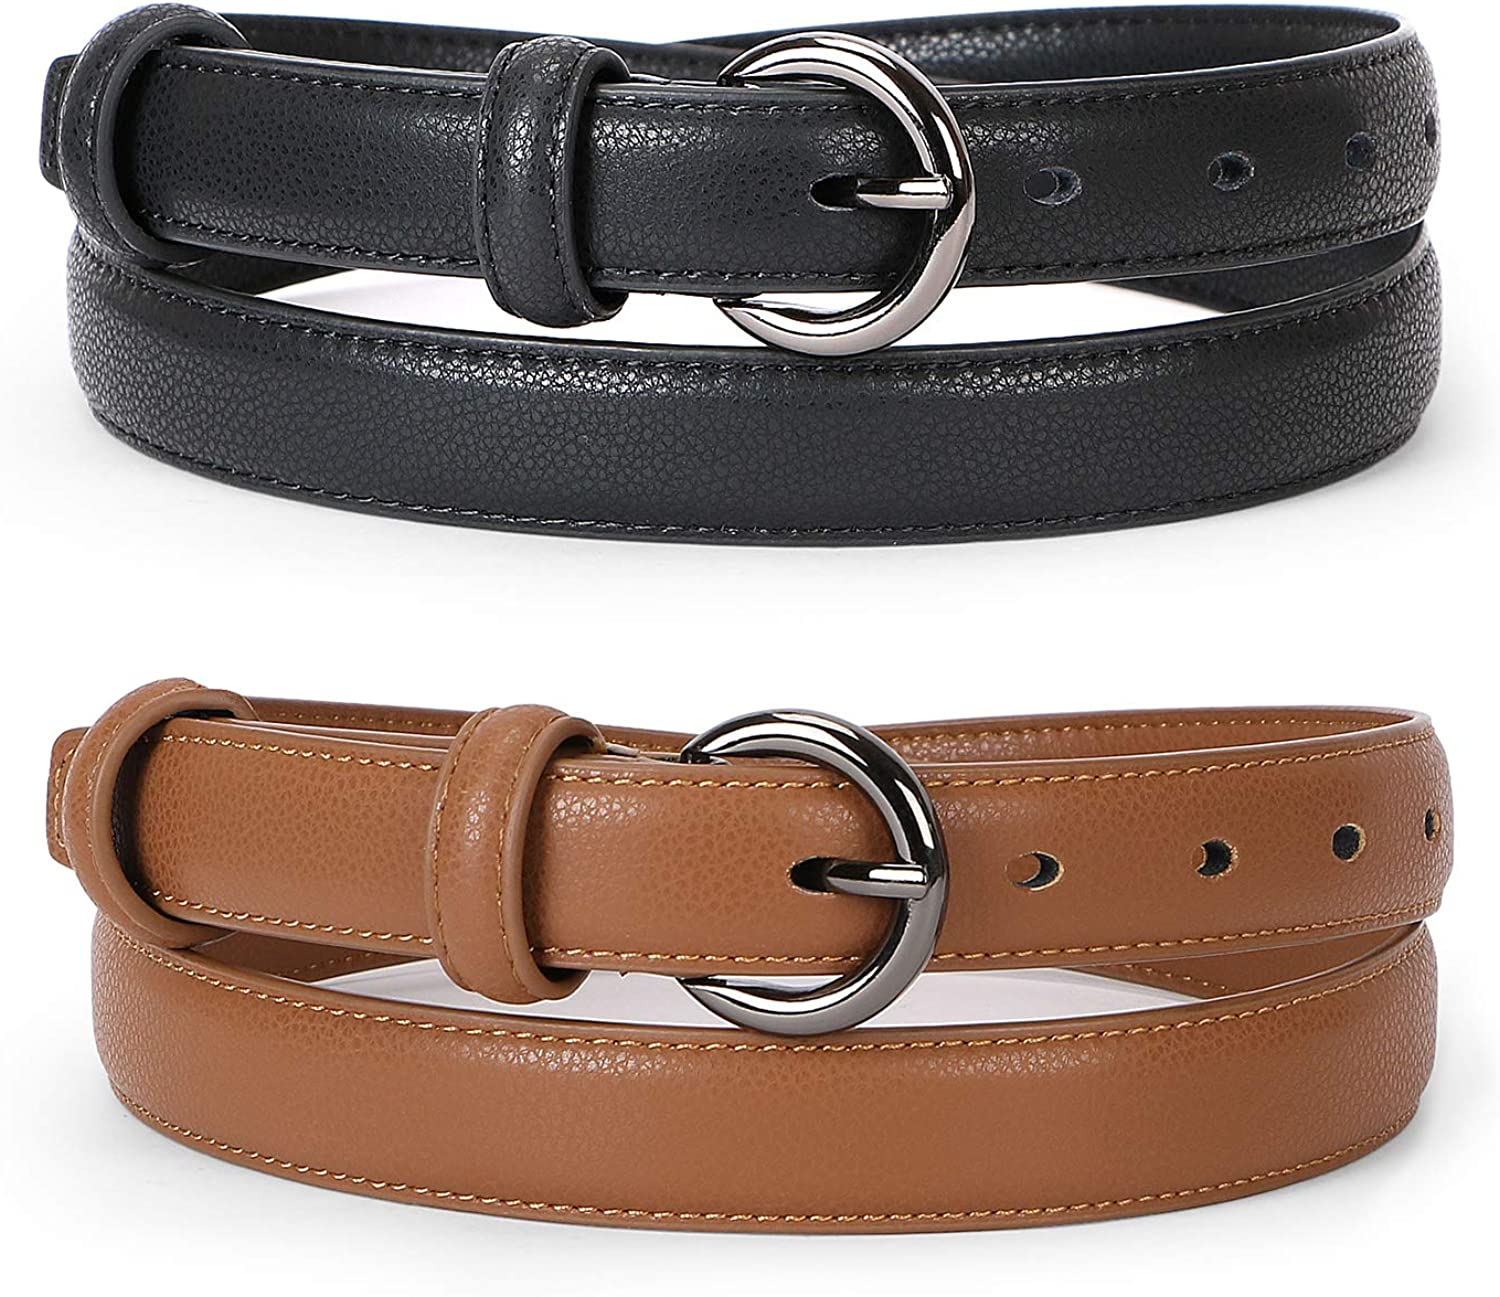 2 Pack Women Leather Belt for Jeans Pants with Exquisite